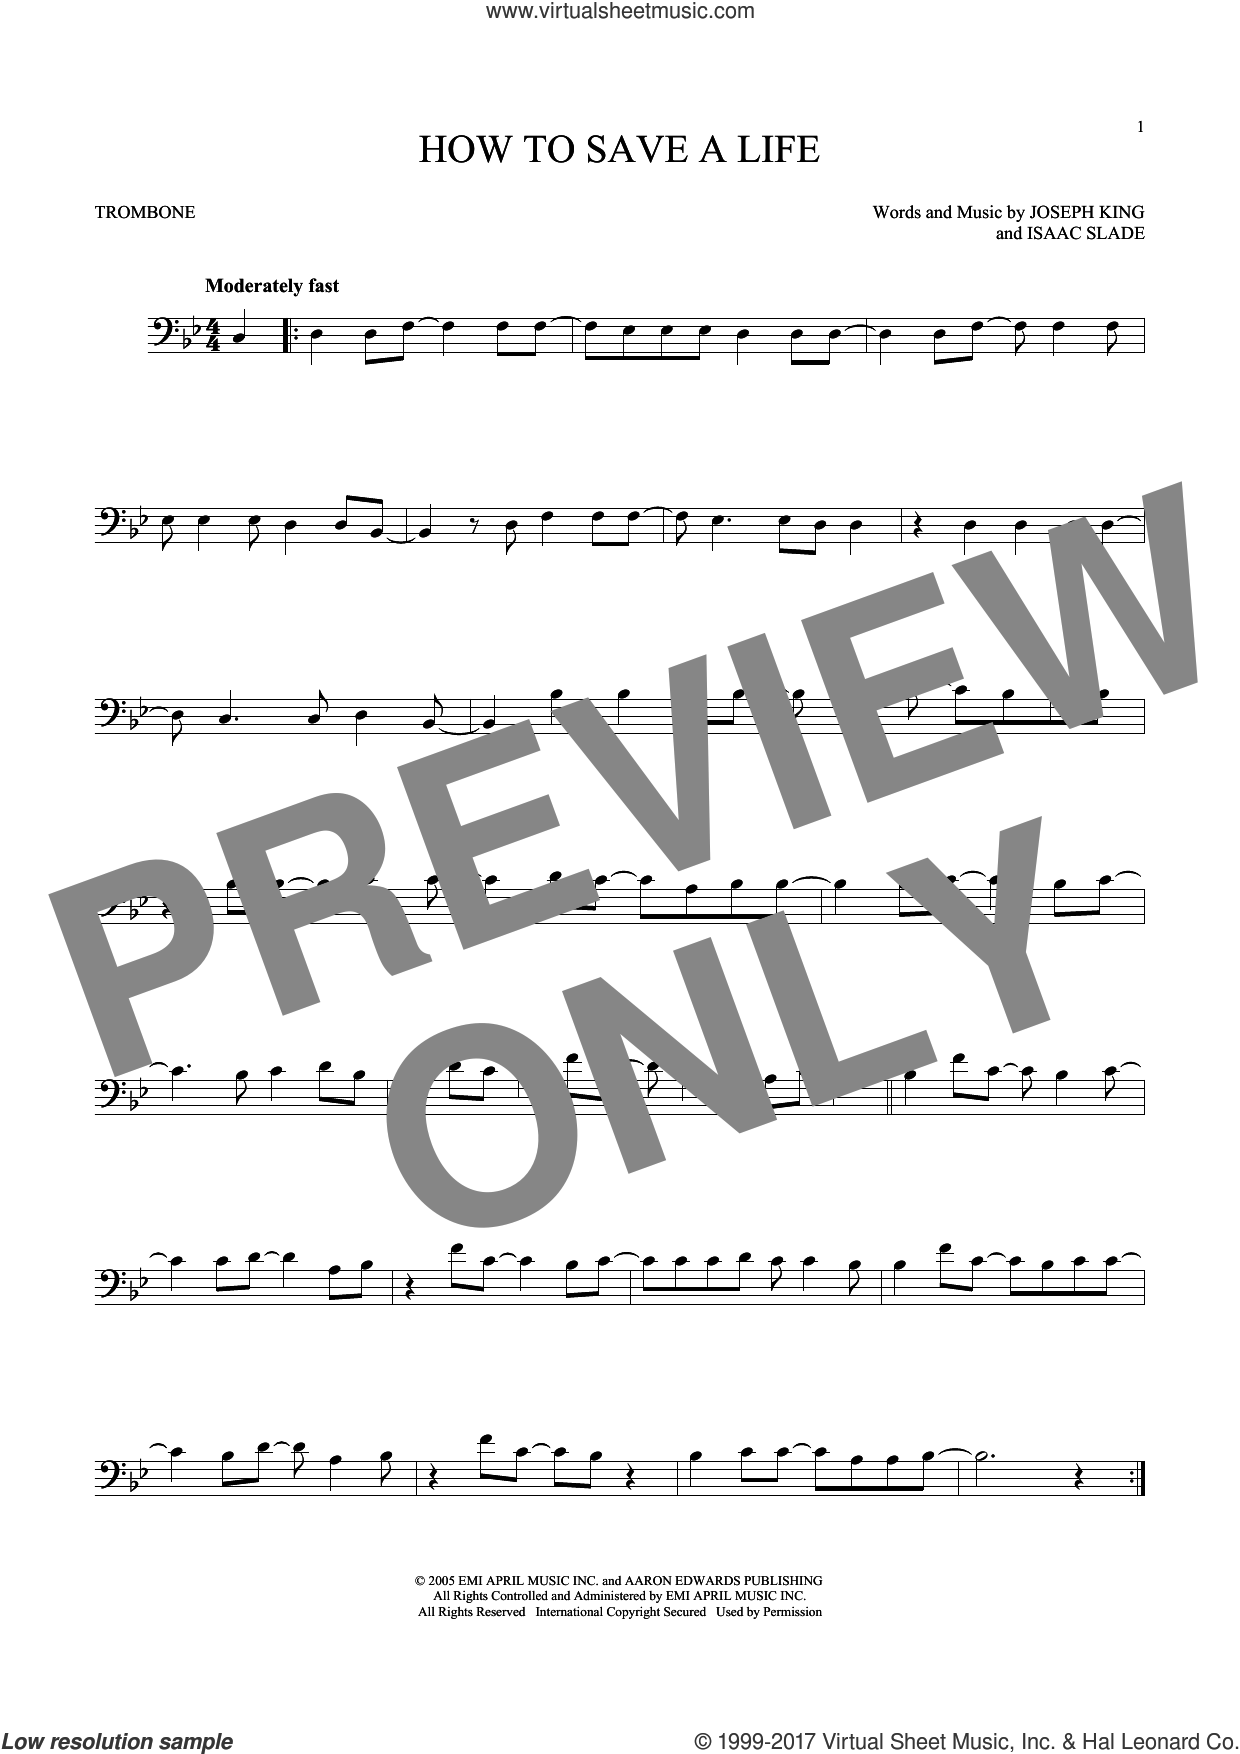 How To Save A Life sheet music for trombone solo by Joseph King, The Fray and Isaac Slade. Score Image Preview.